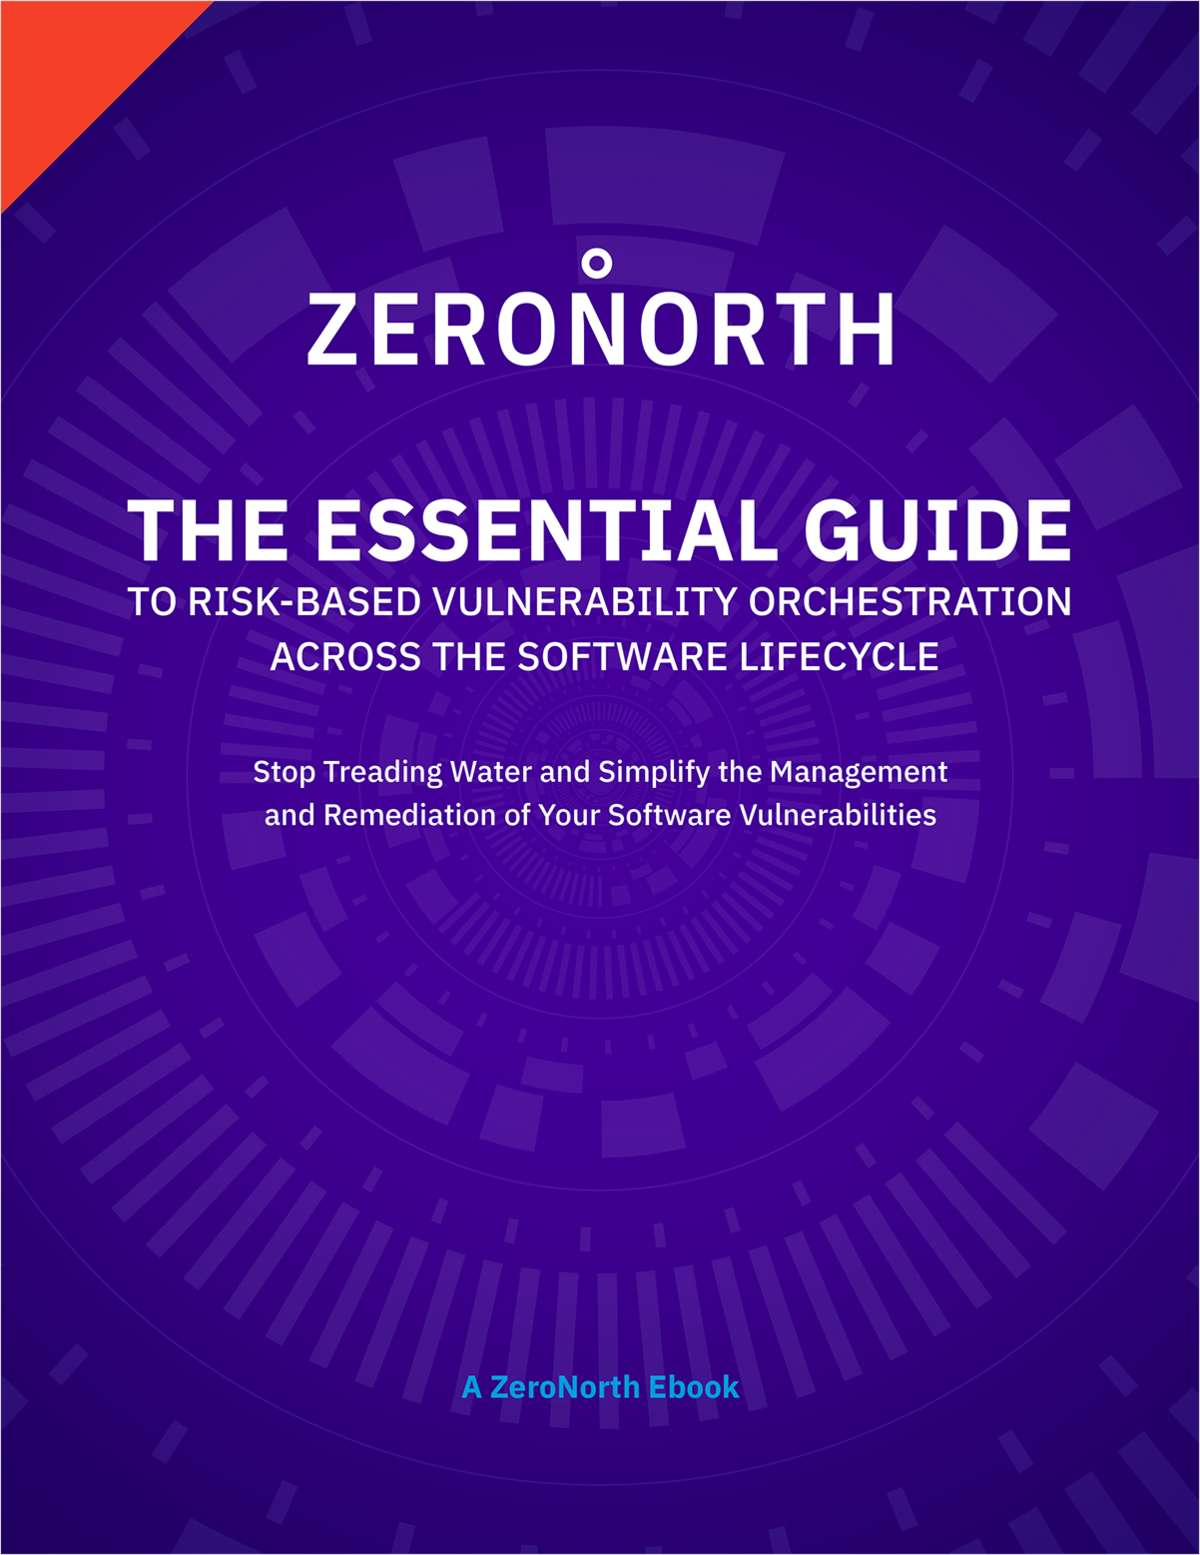 The Essential Guide to Risk-Based Vulnerability Orchestration Across the Software Lifecycle